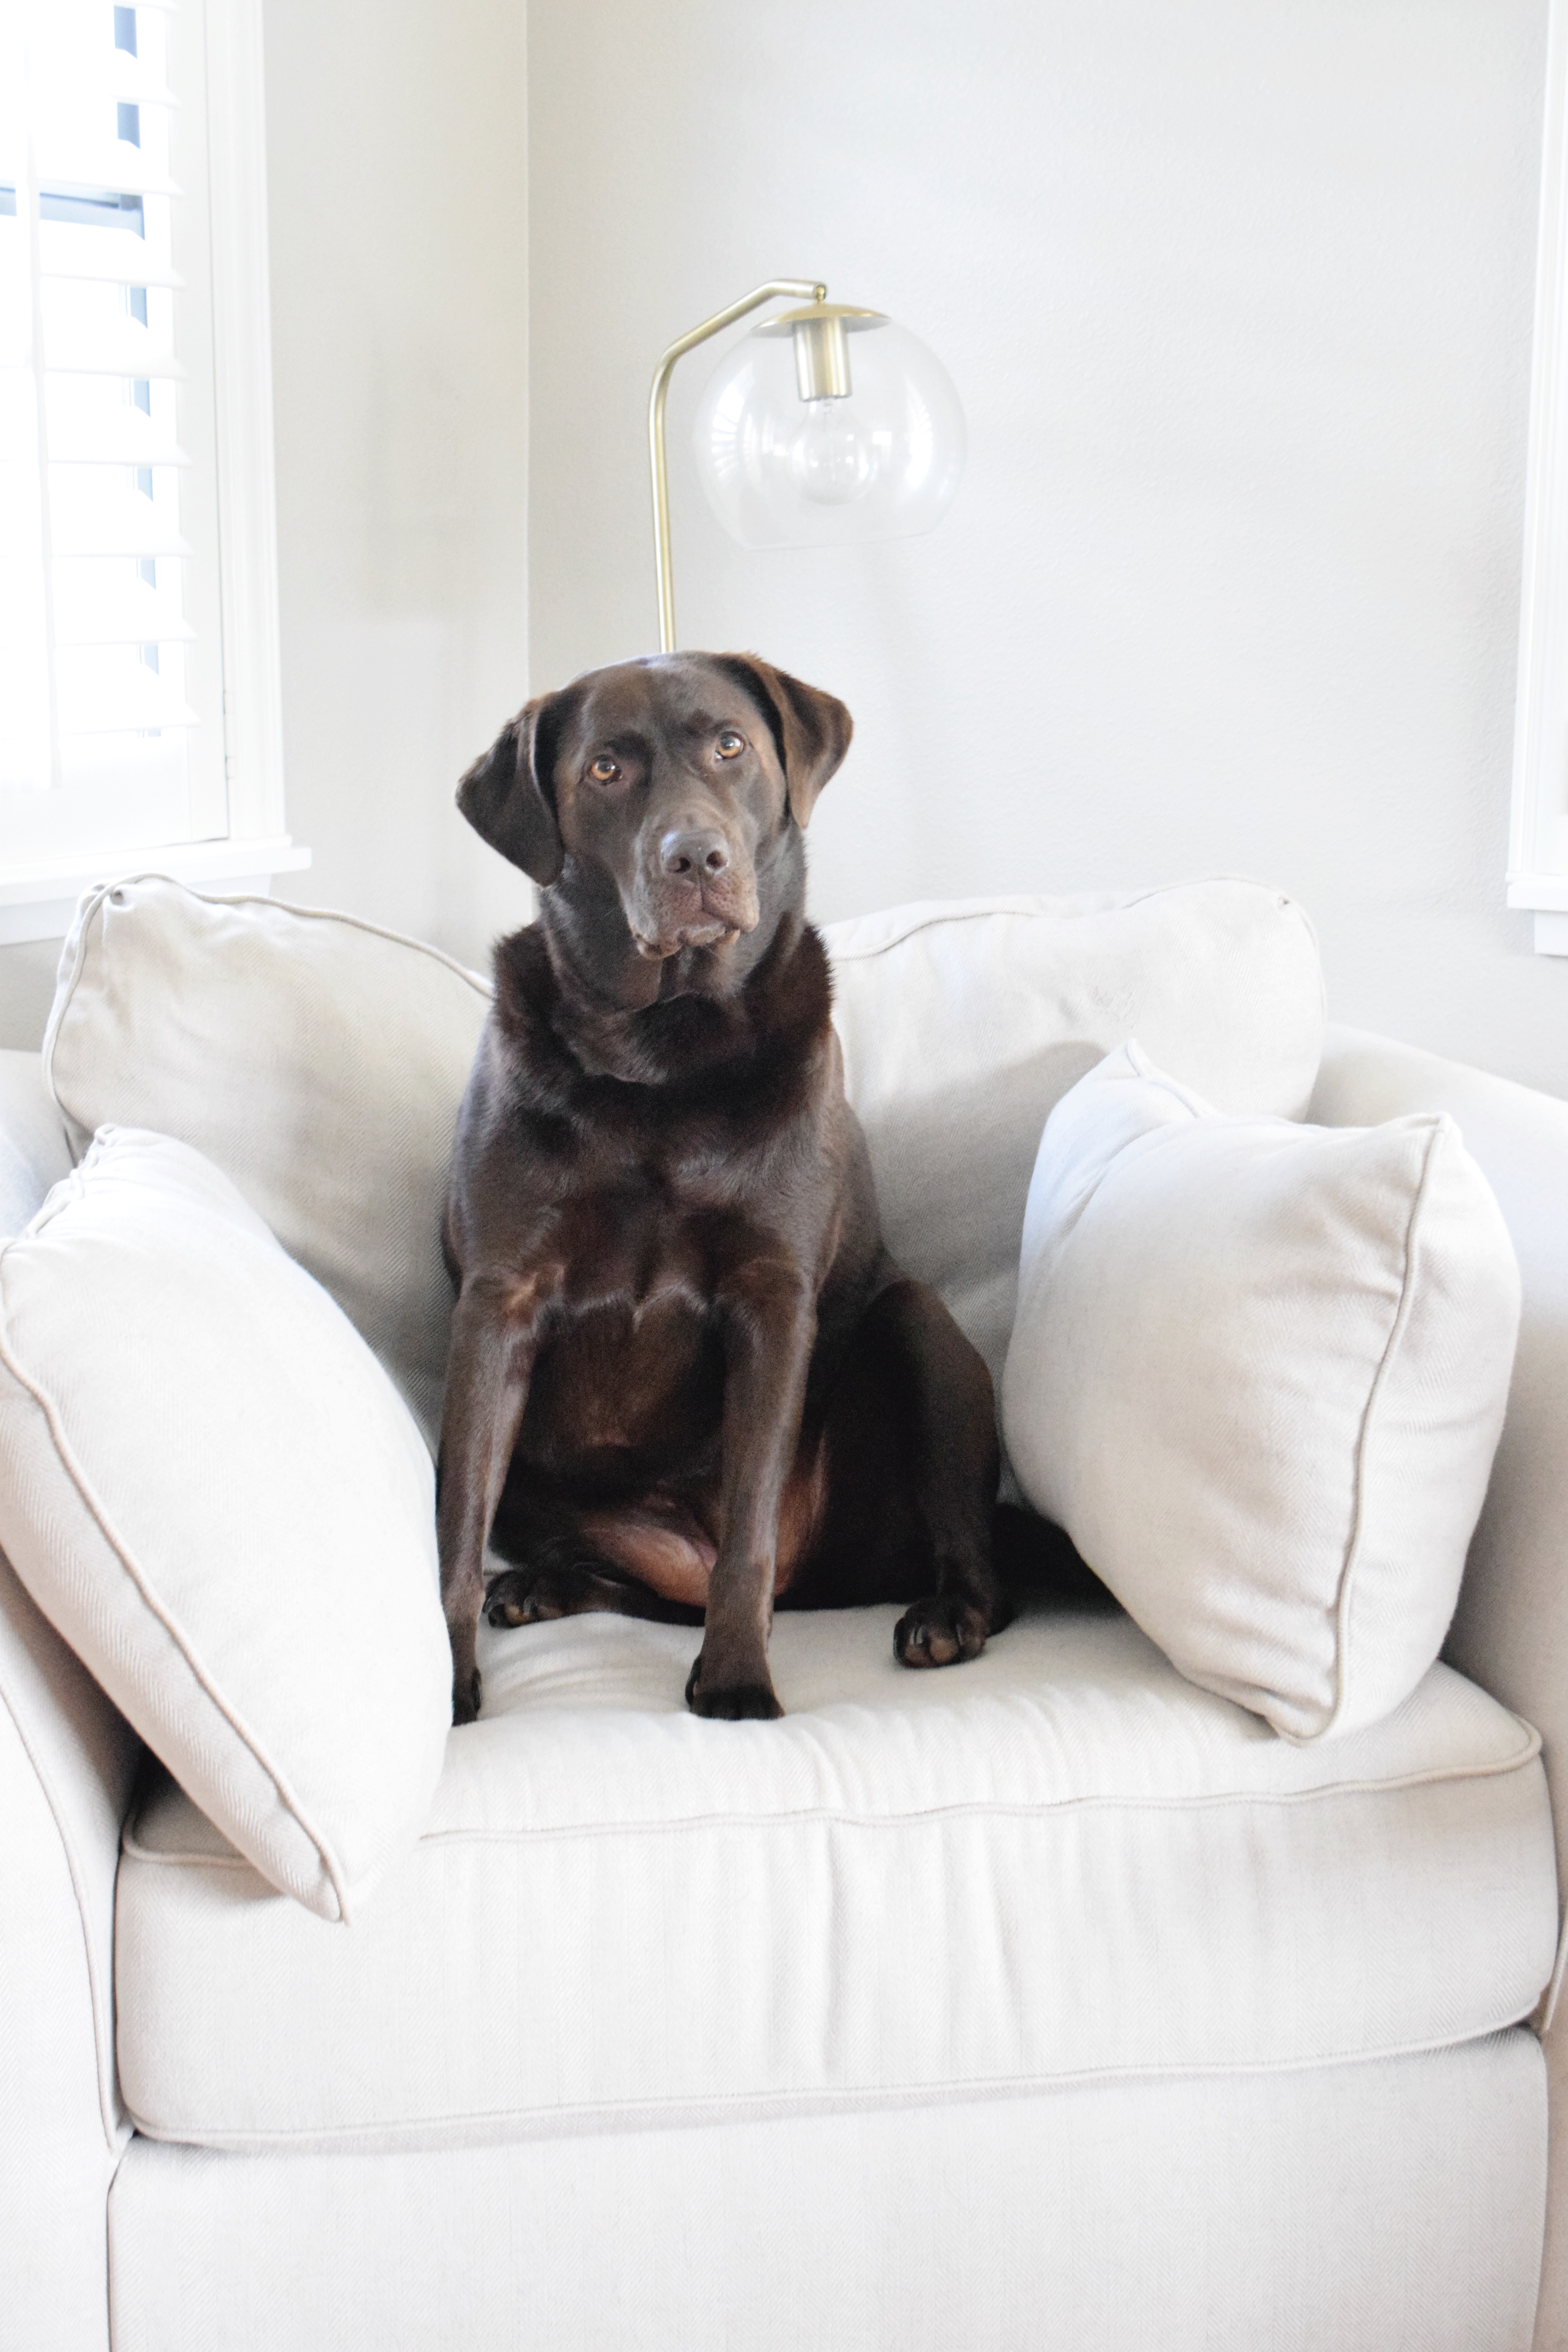 Oversized Cream Chair - Chocolate Labradors - Hawaiian Home Feature on Apartment Therapy - CommuniKait